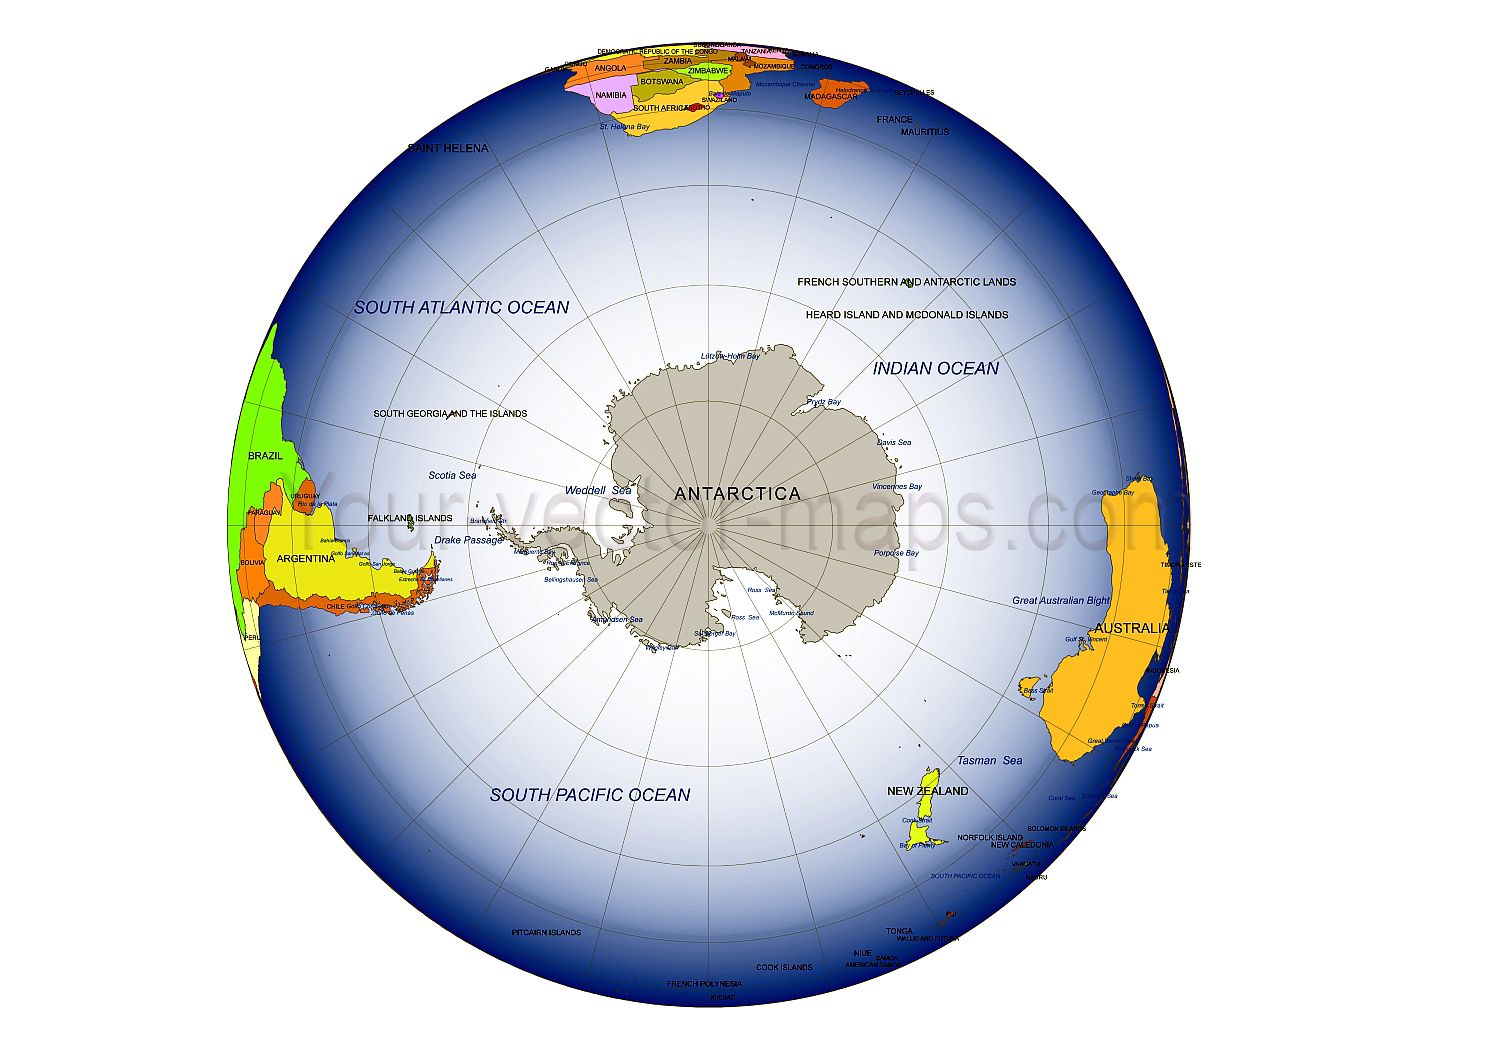 South pole on globe map antarctica fosused on globe map colored south pole on globe map antarctica fosused on globe map colored weddel sea gumiabroncs Image collections